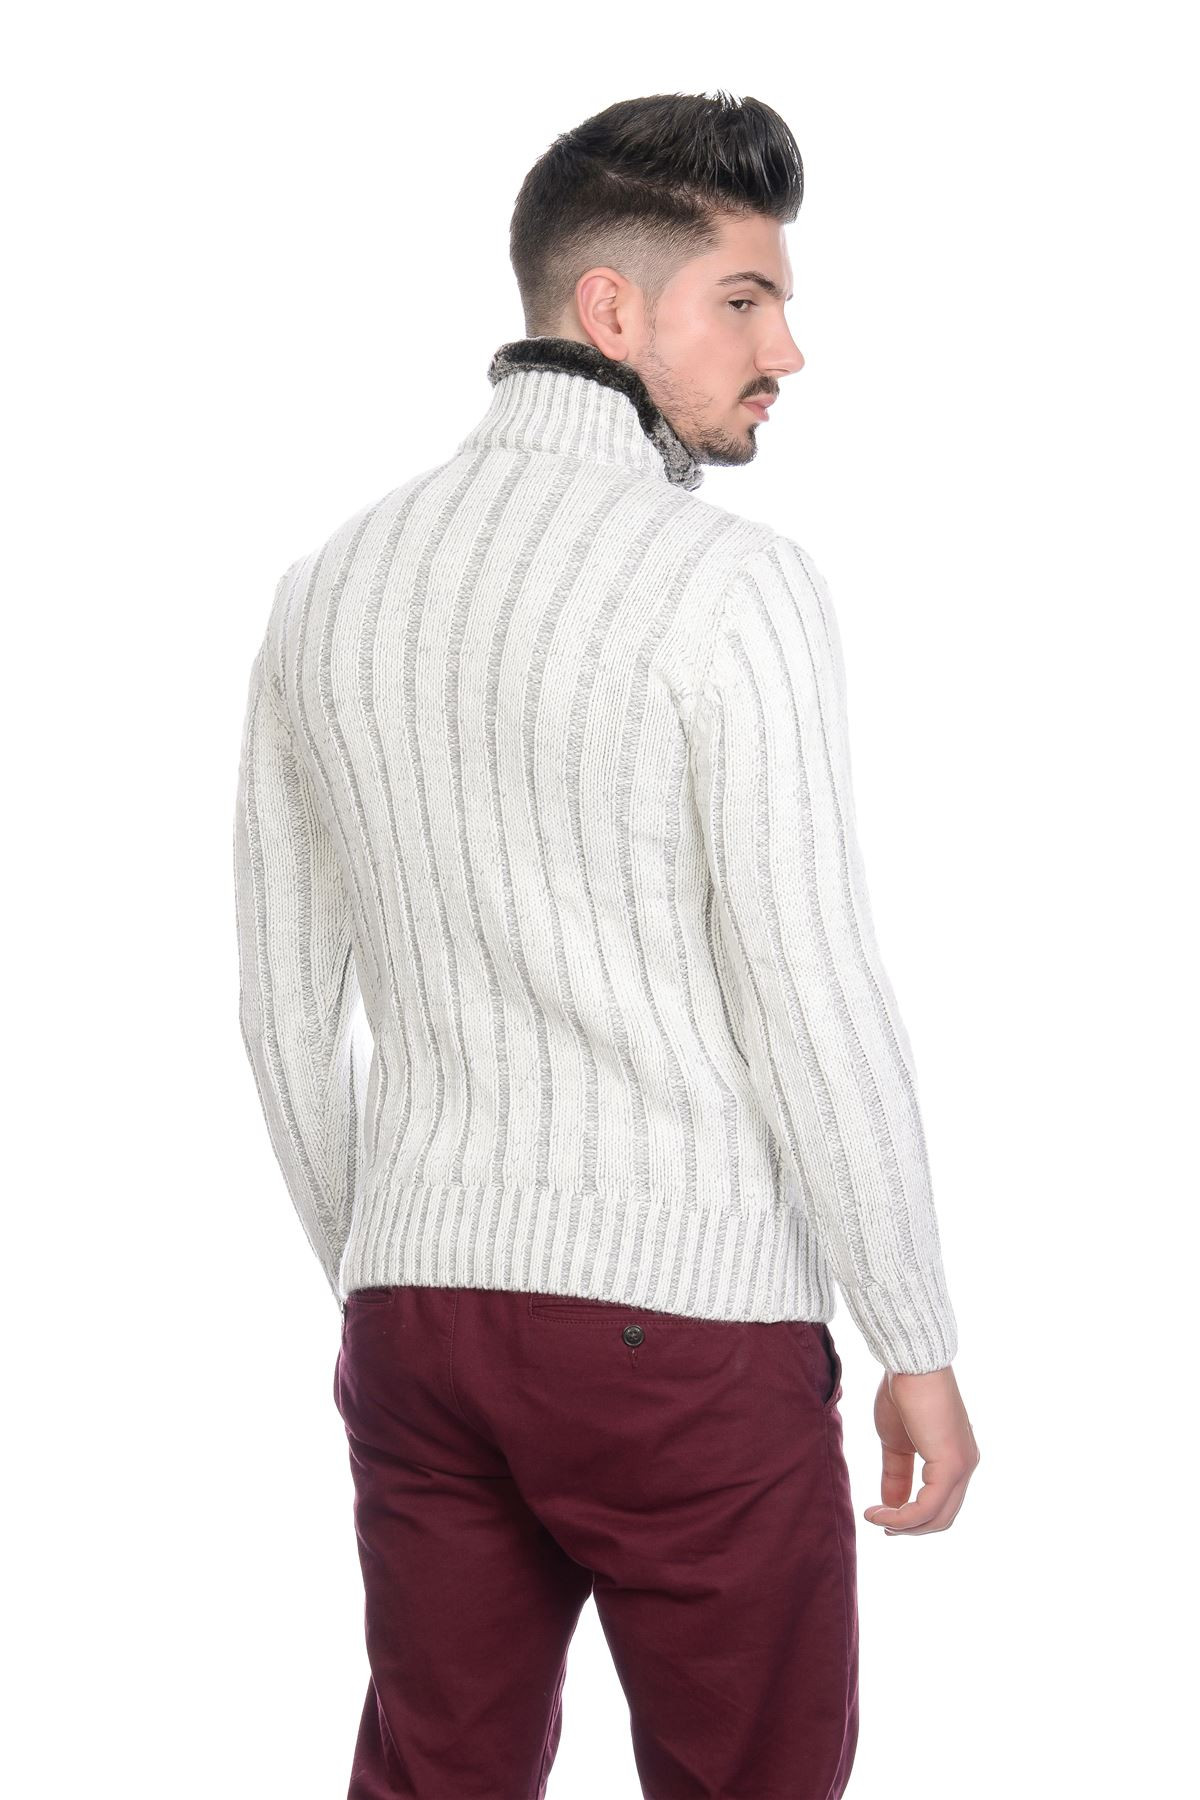 Best Of Bnwt Mens Designer Cable Knit Jumper Cardigan Sweater with Mens Cable Cardigan Of Top 48 Pics Mens Cable Cardigan